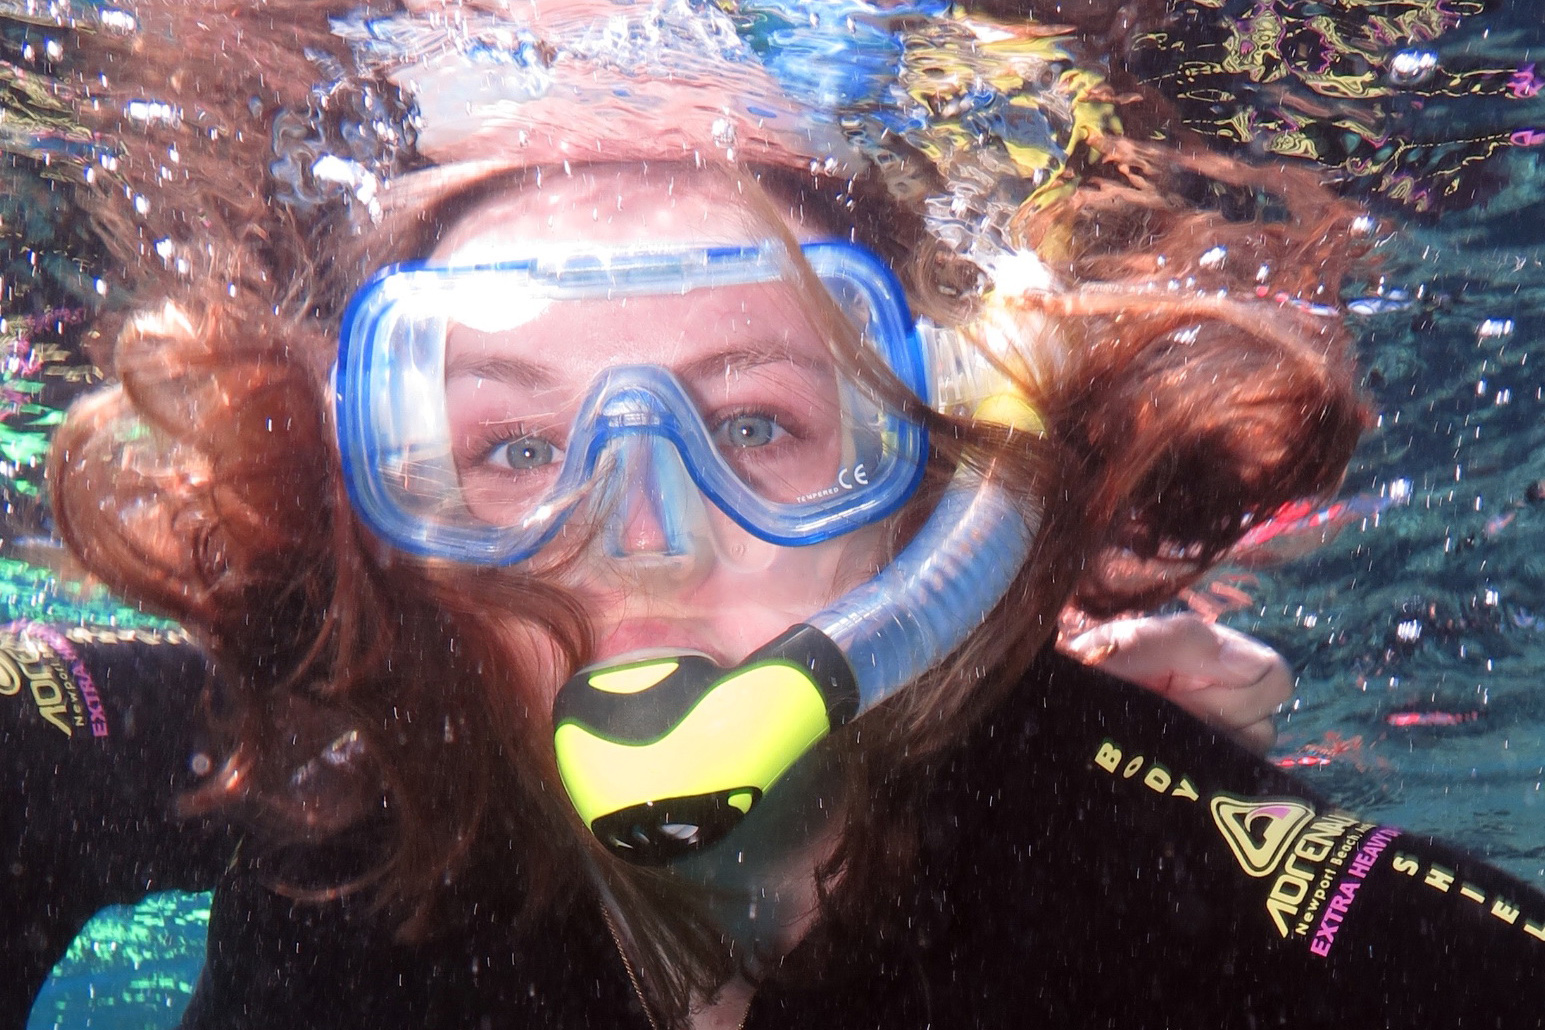 Close up of Kylie Clark snorkeling in the ocean